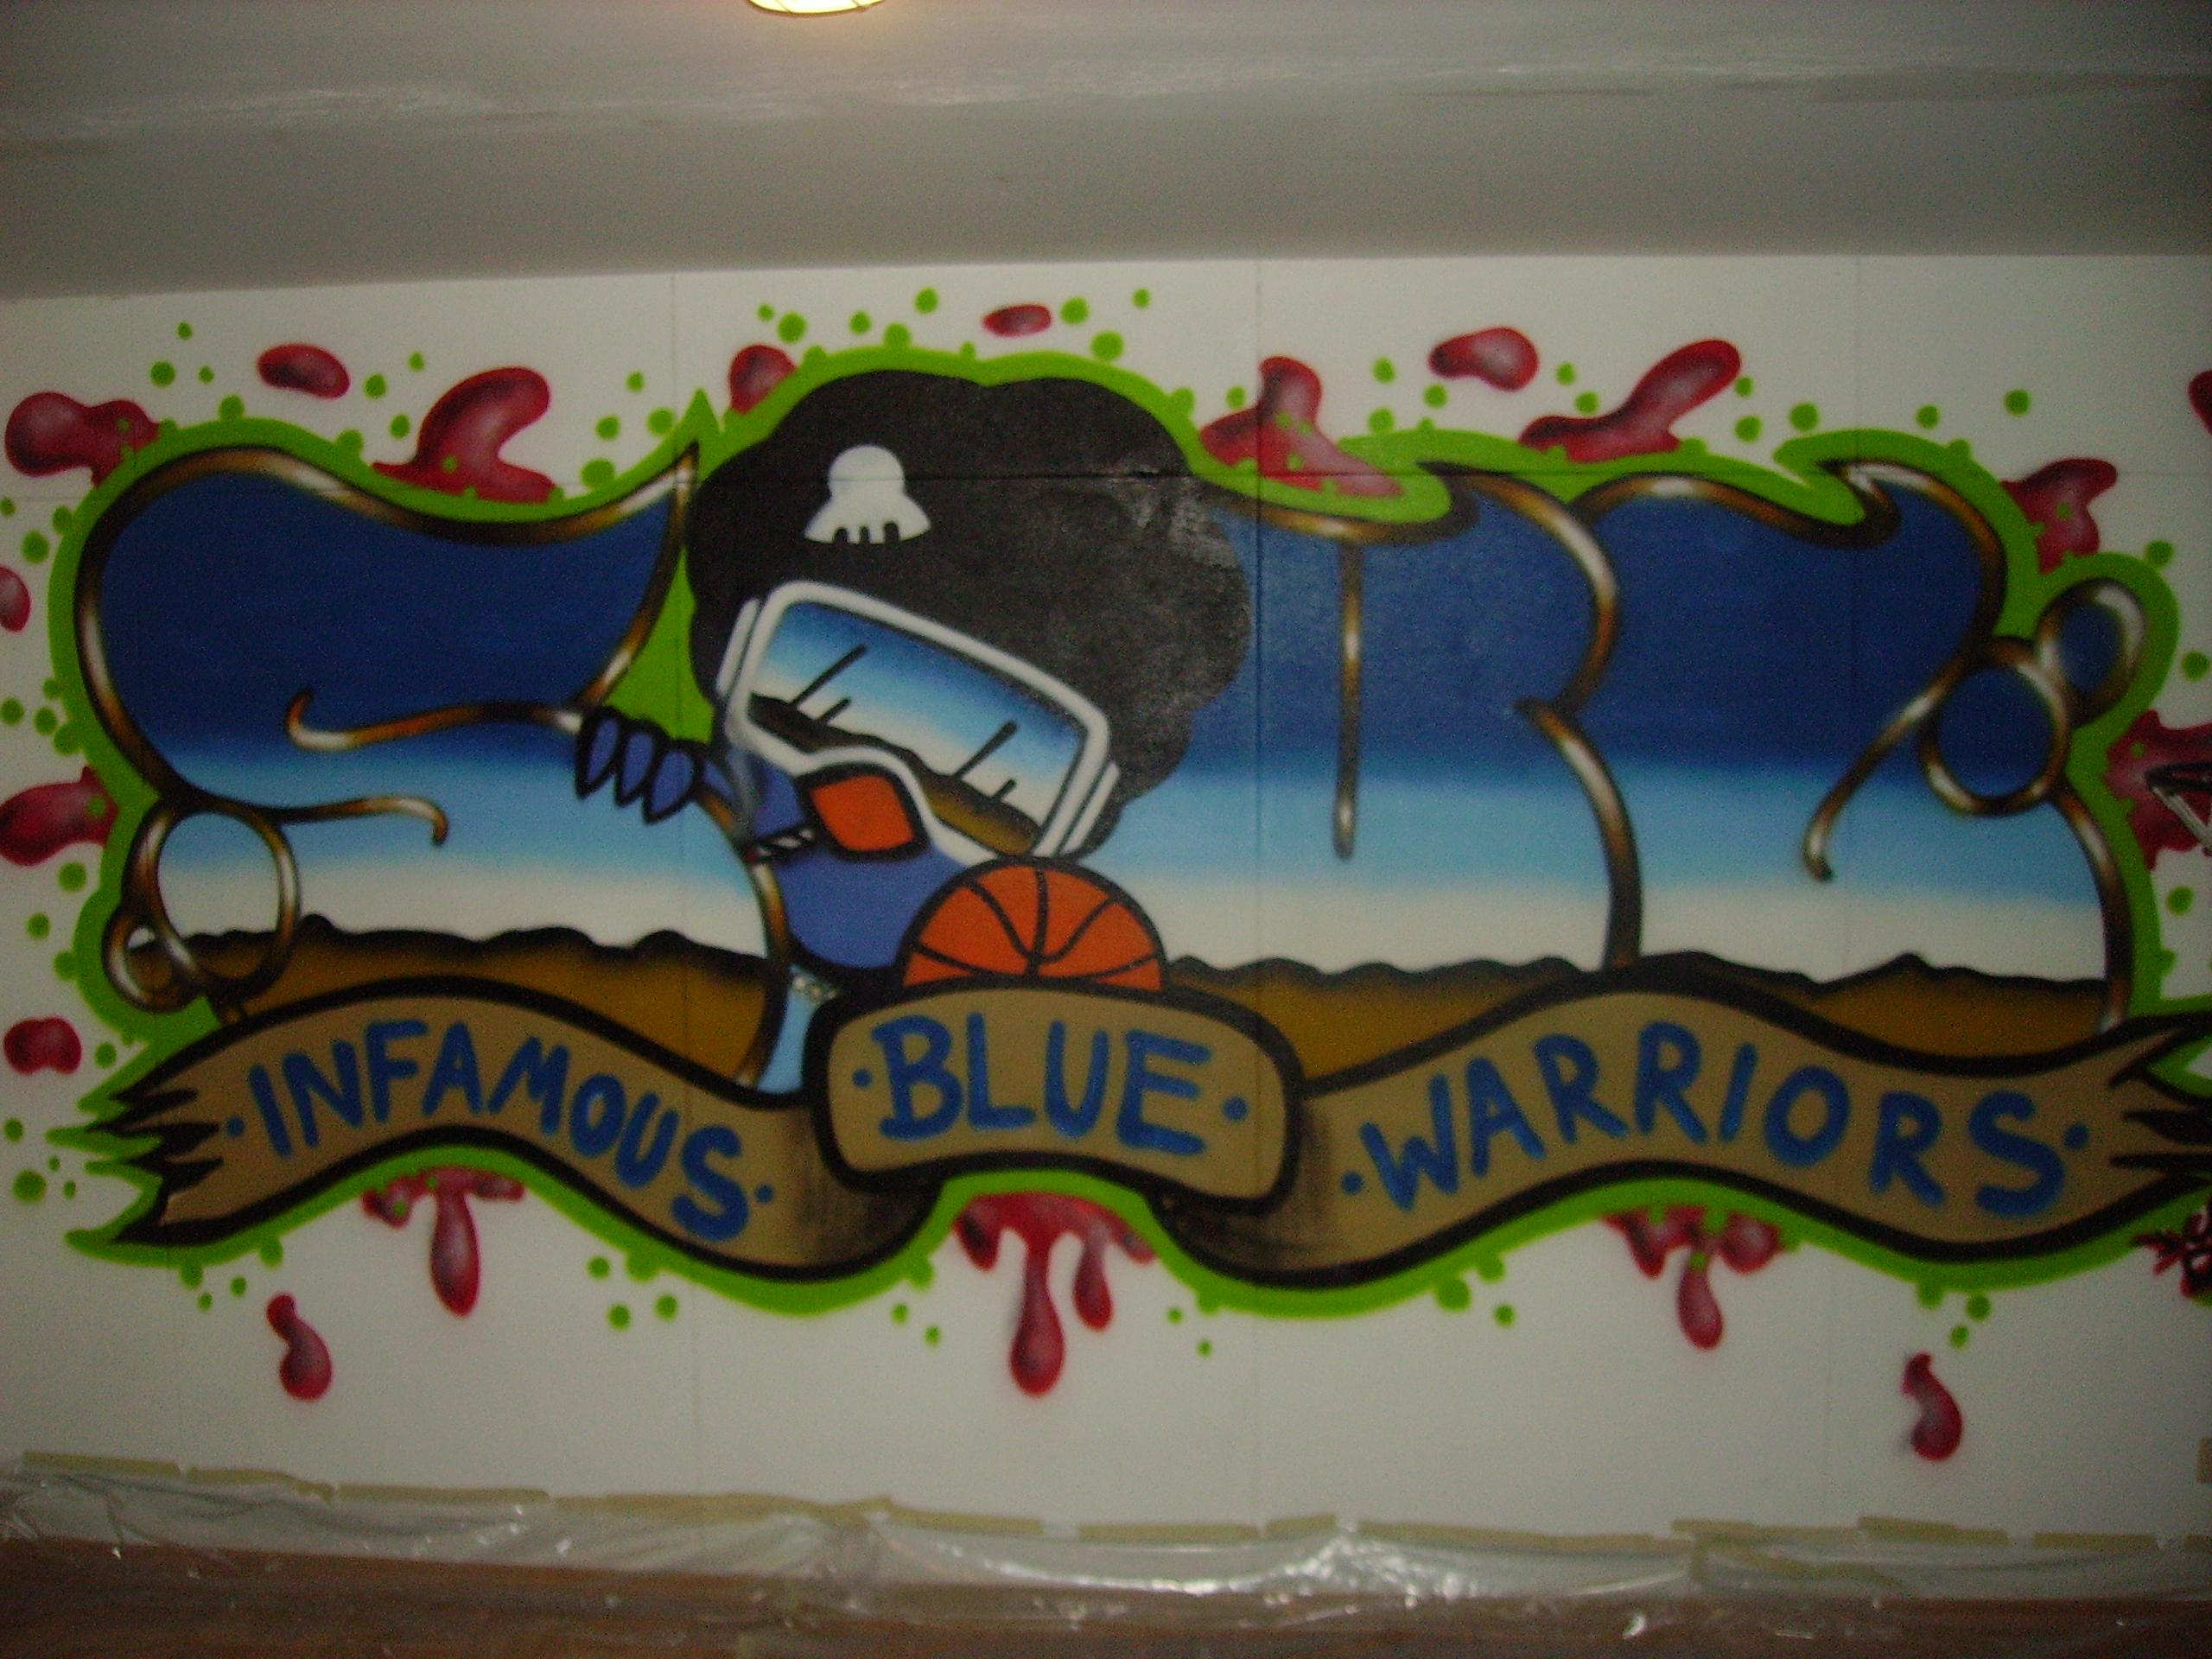 Street art infamous blue warriors - Graffiti zimmerwand ...